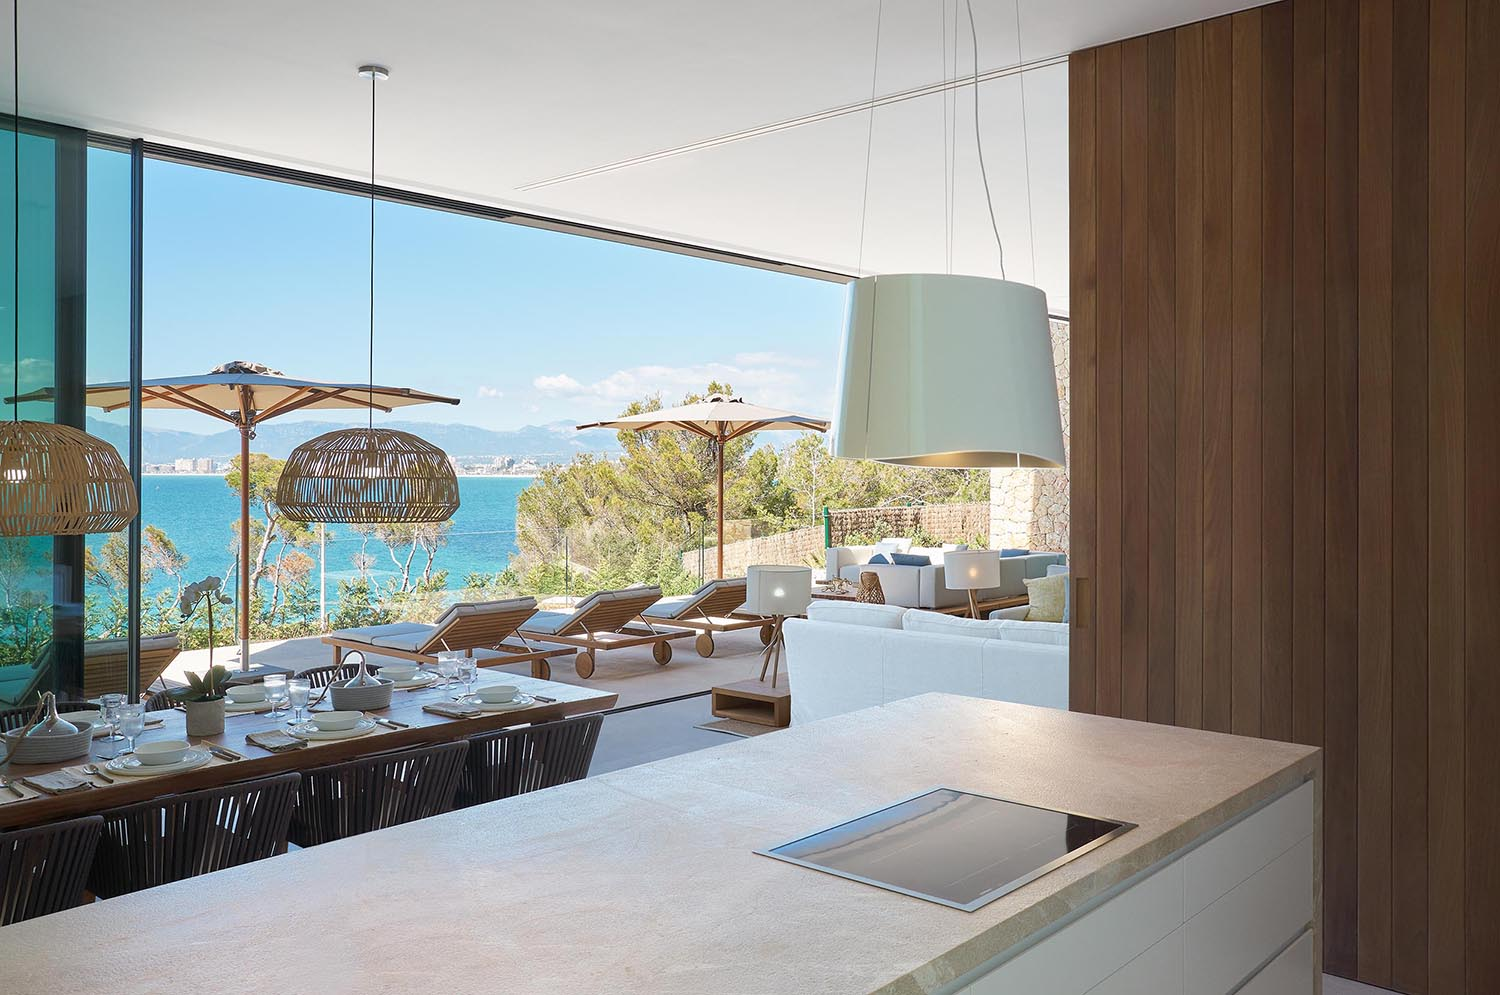 7-art-sanchez-architecture-interior-design-photography-mallorca-jorge-bibiloni-son-veri.jpg